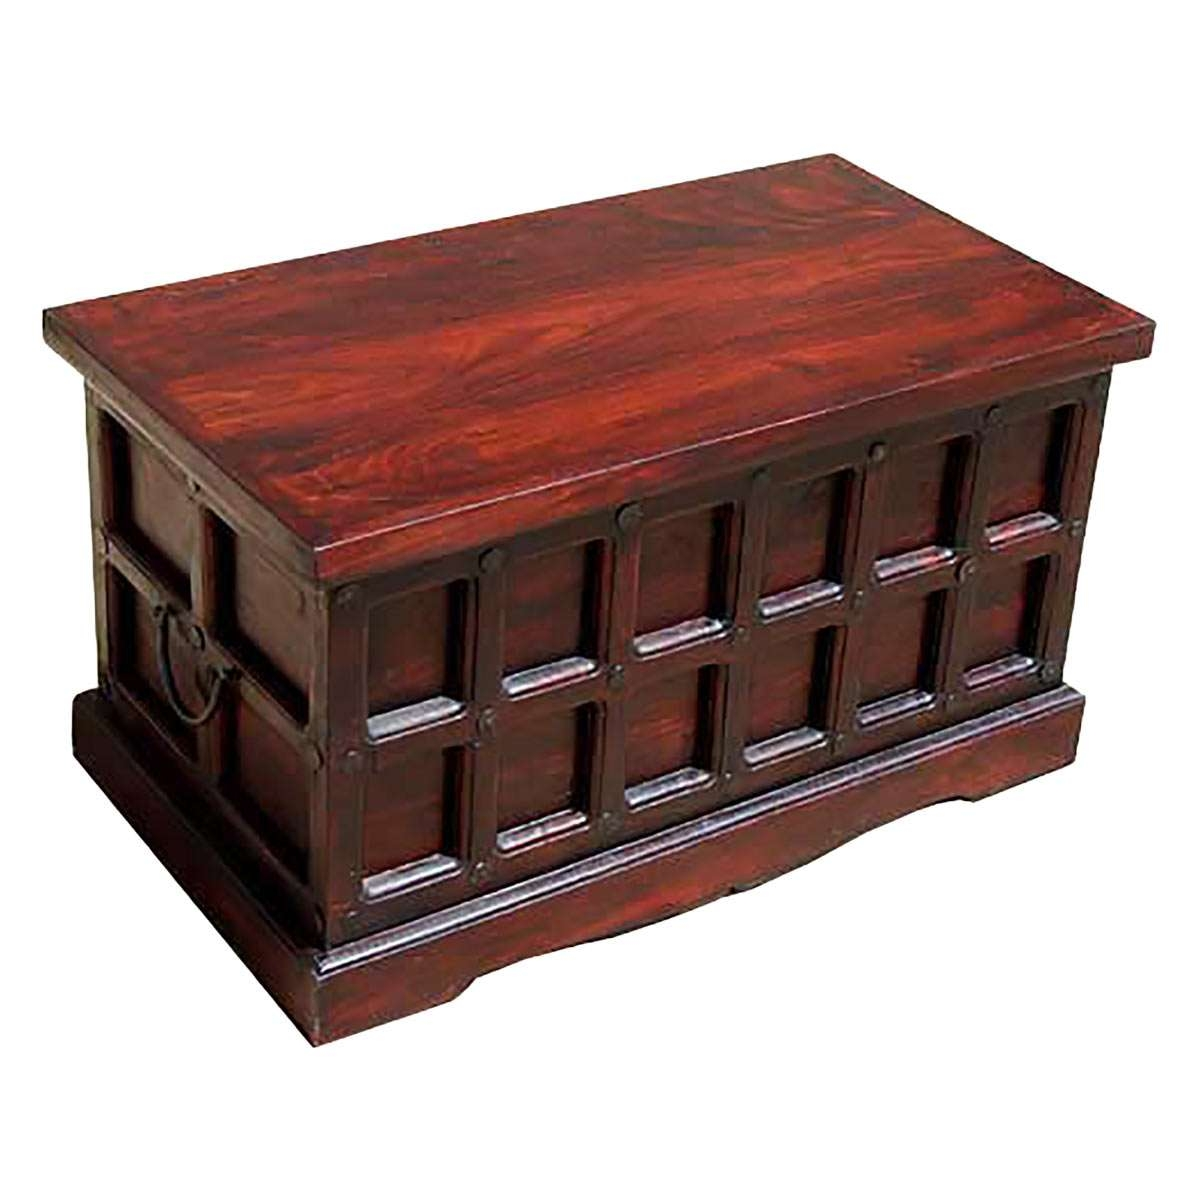 Solid Wood Storage Chest Trunk Box Coffee Table In Recent Coffee Tables With Box Storage (View 1 of 20)